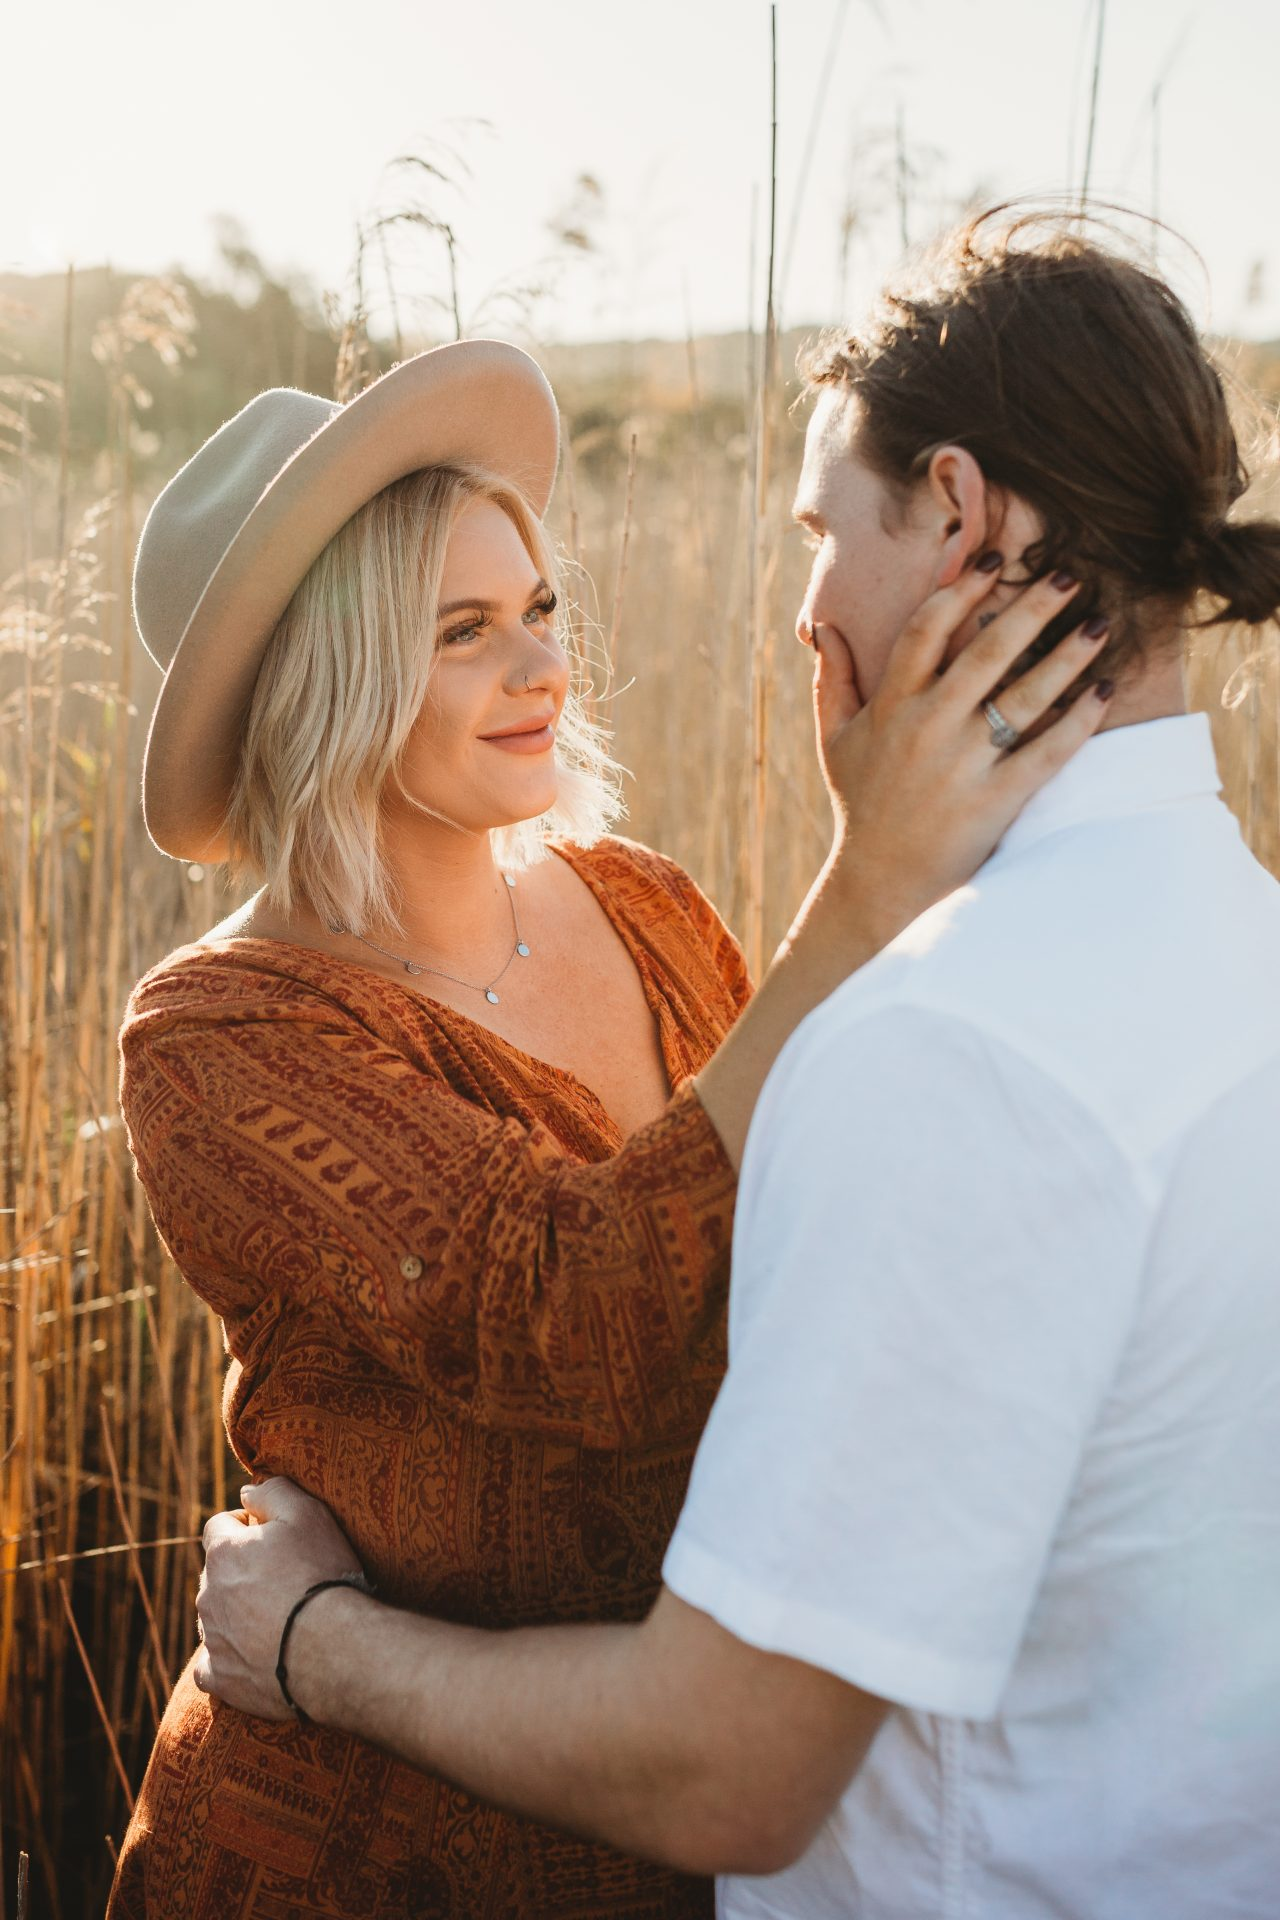 Young boho woman in wide brimmed hat, caresses her boyfriend's face while smiling at him